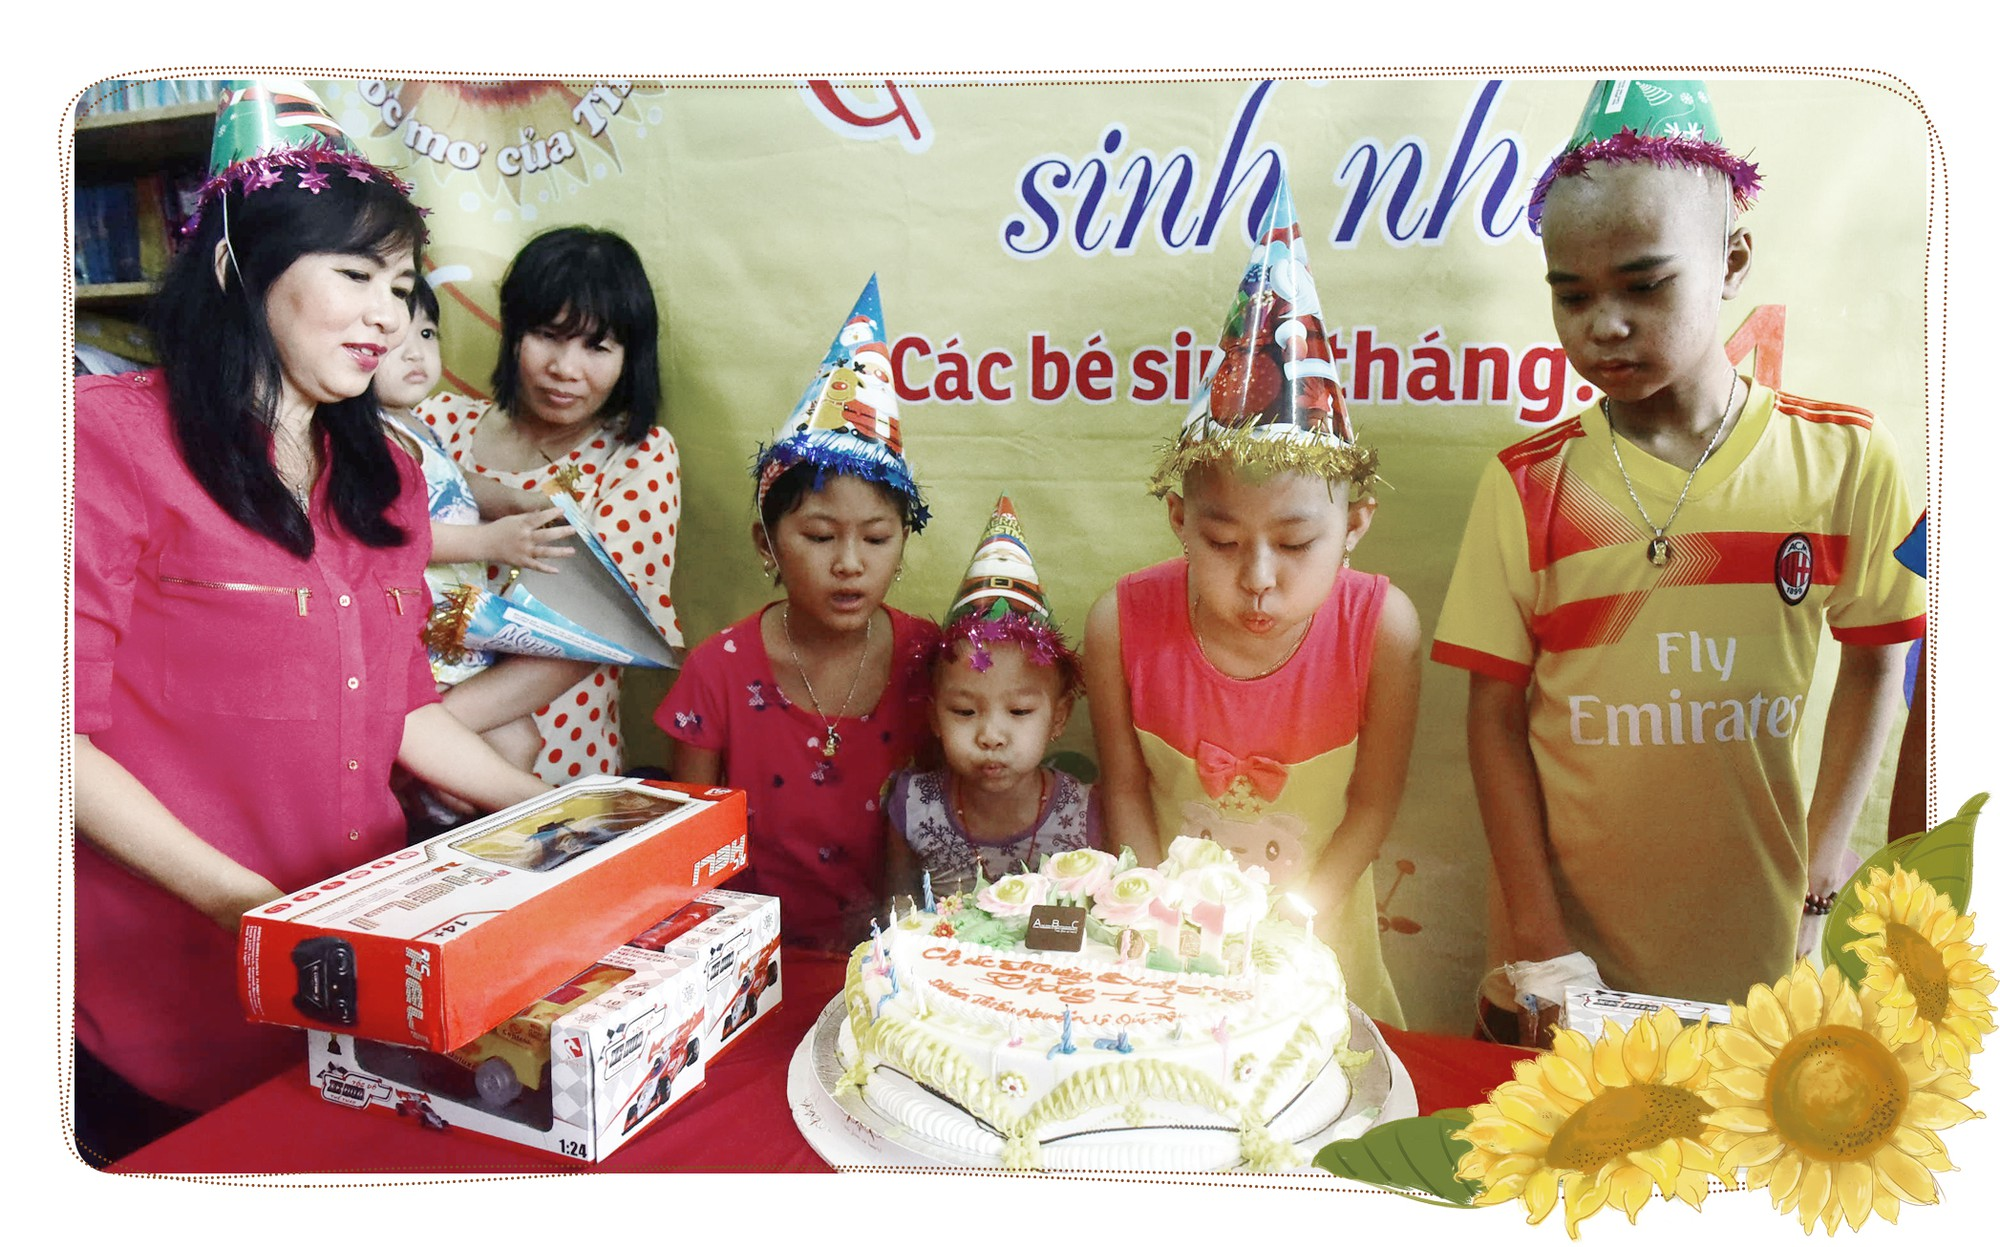 Meet those caring wholeheartedly for cancer-stricken children in Ho Chi Minh City